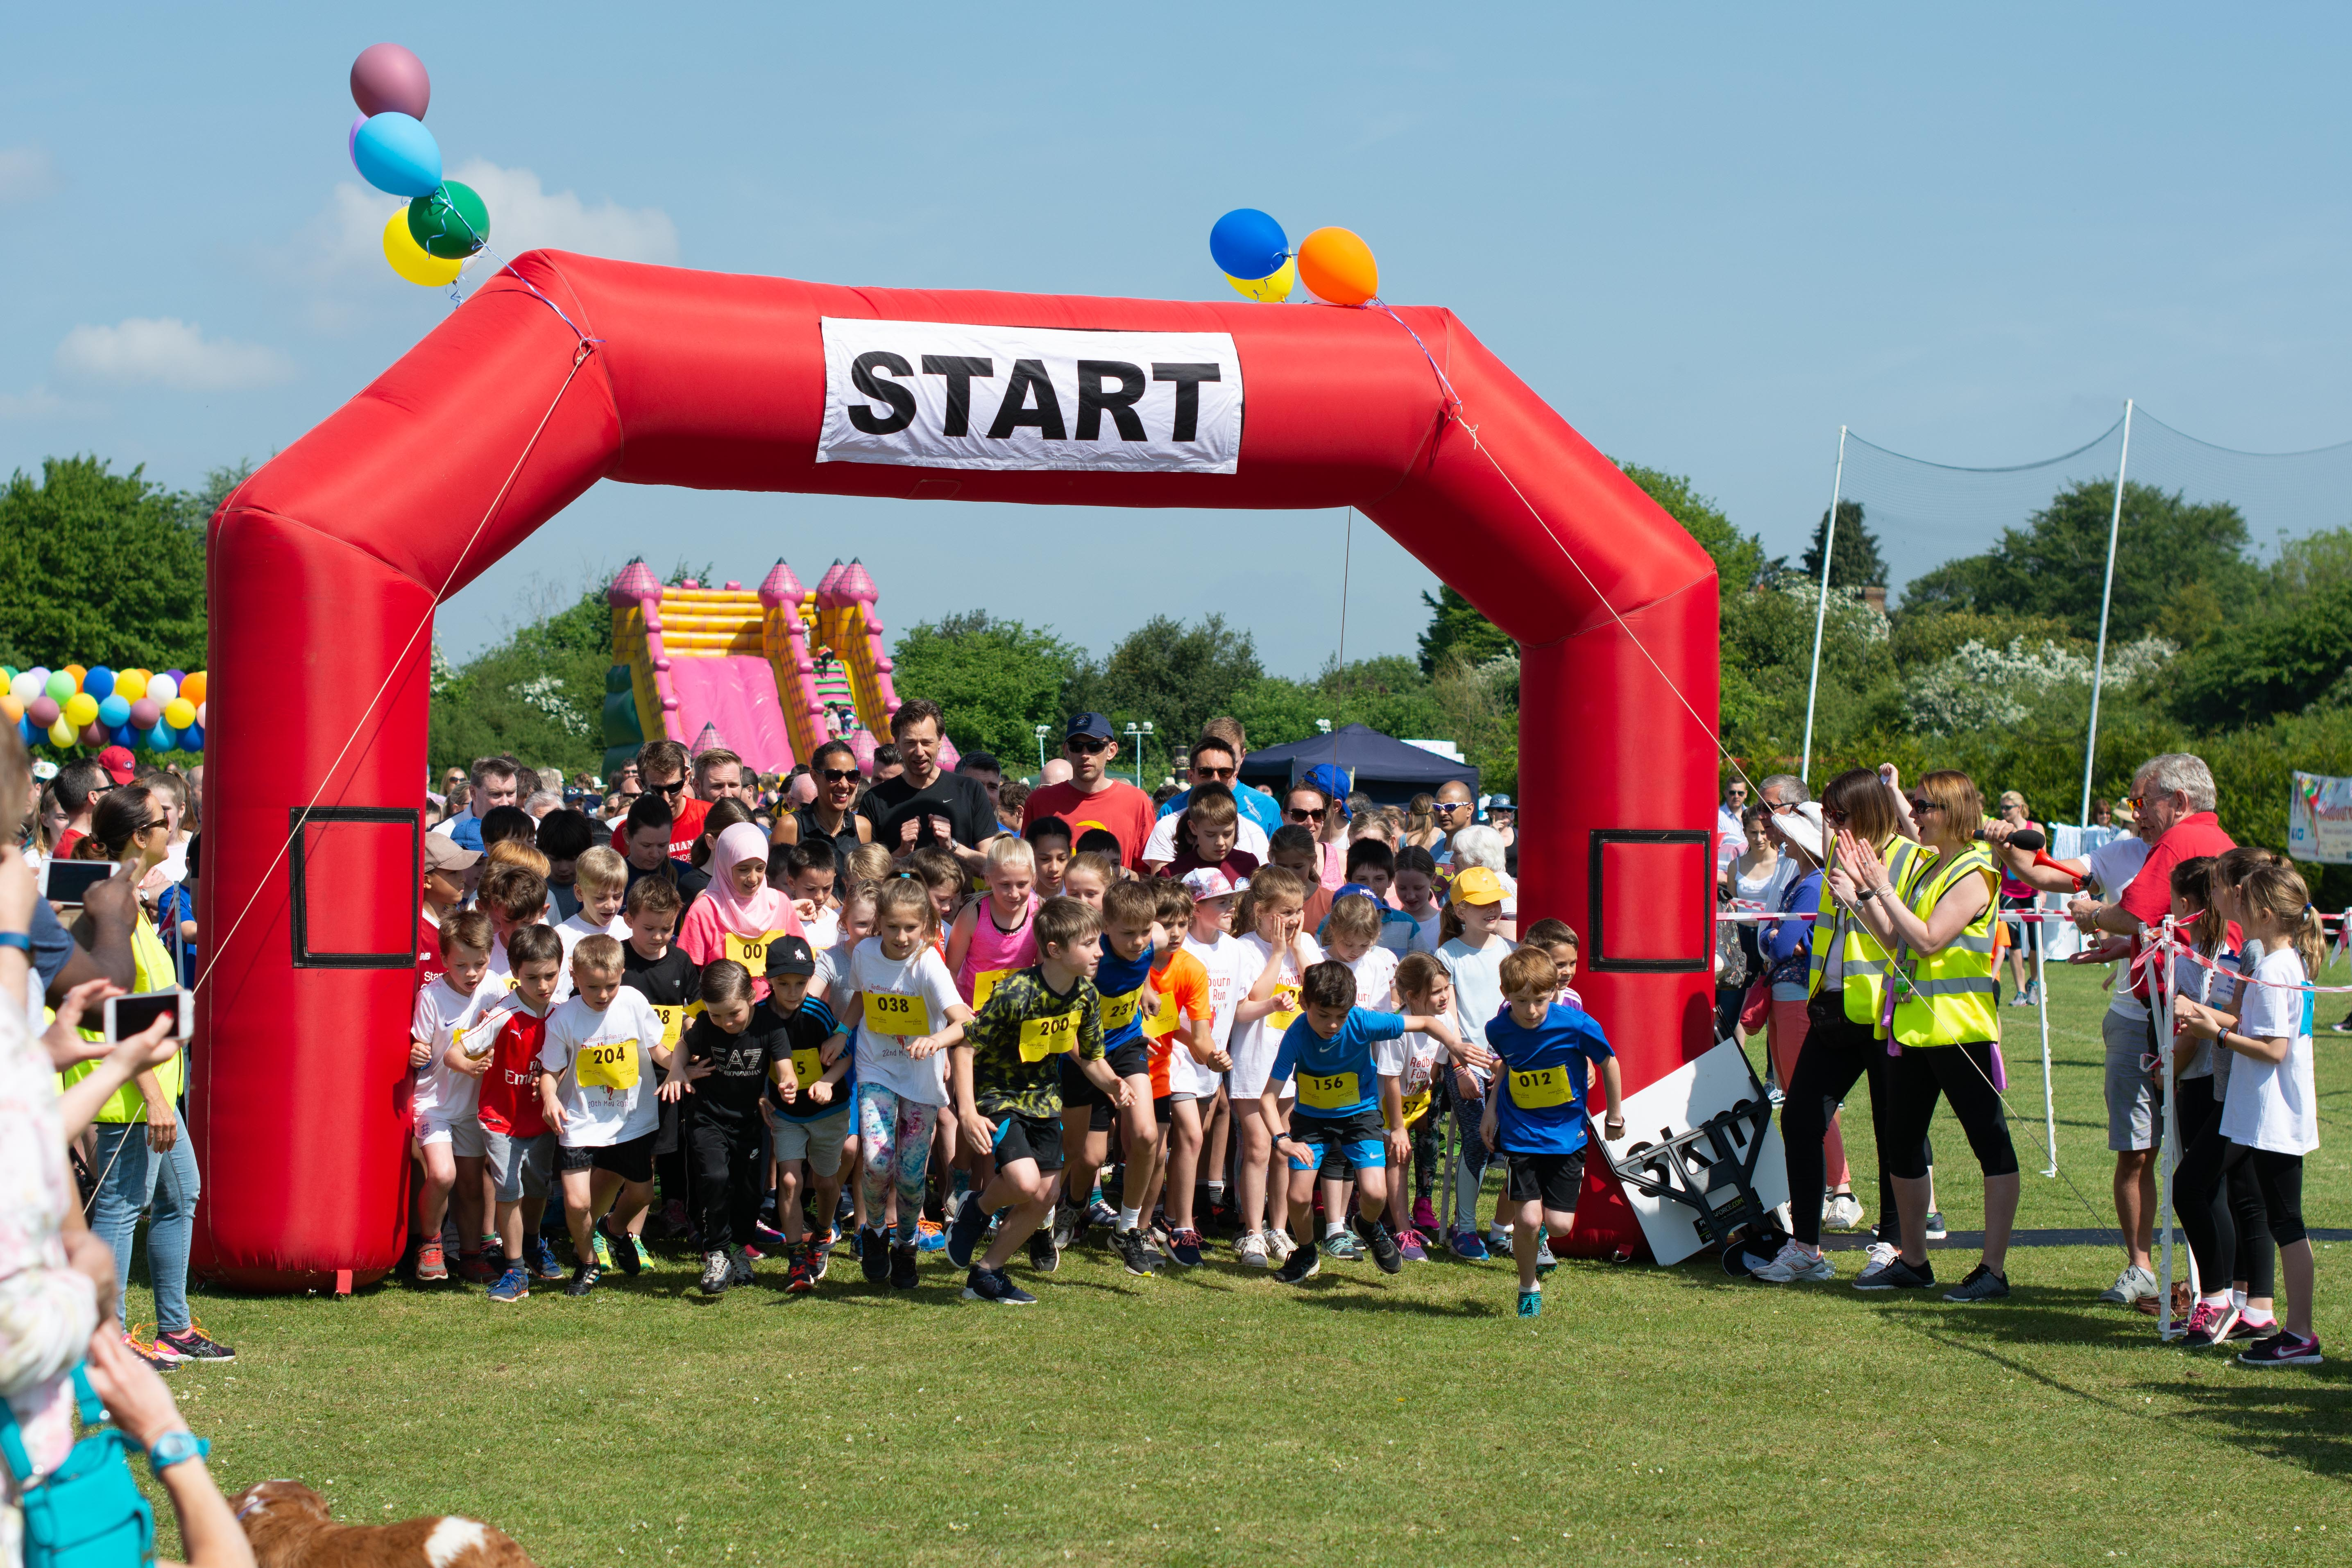 The start line at the Redbourn Fun Run 2018